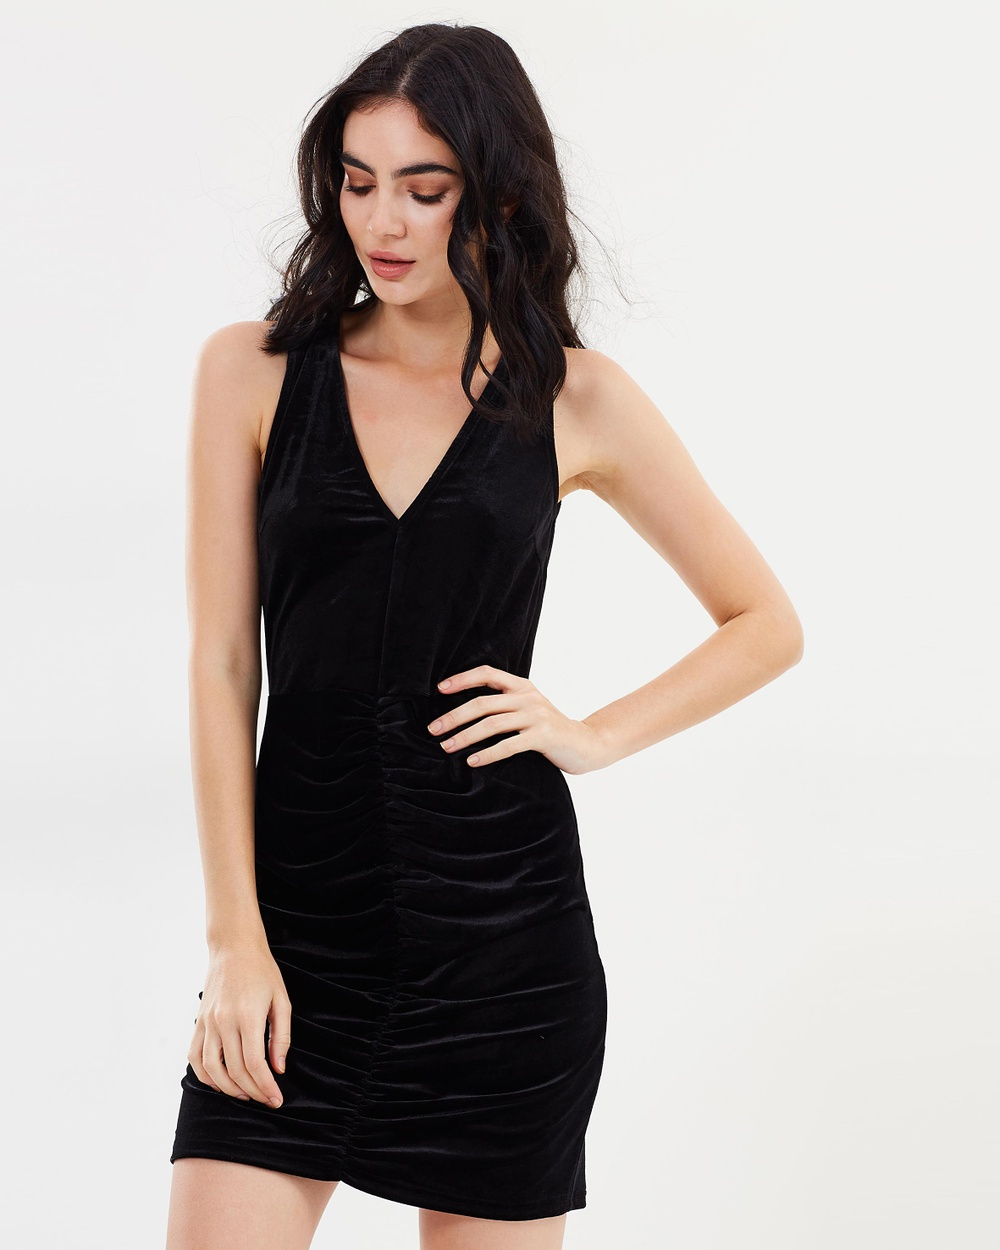 Dazie Cailla Velvet Tie Back Dress Bodycon Dresses Black Velvet Cailla Velvet Tie Back Dress